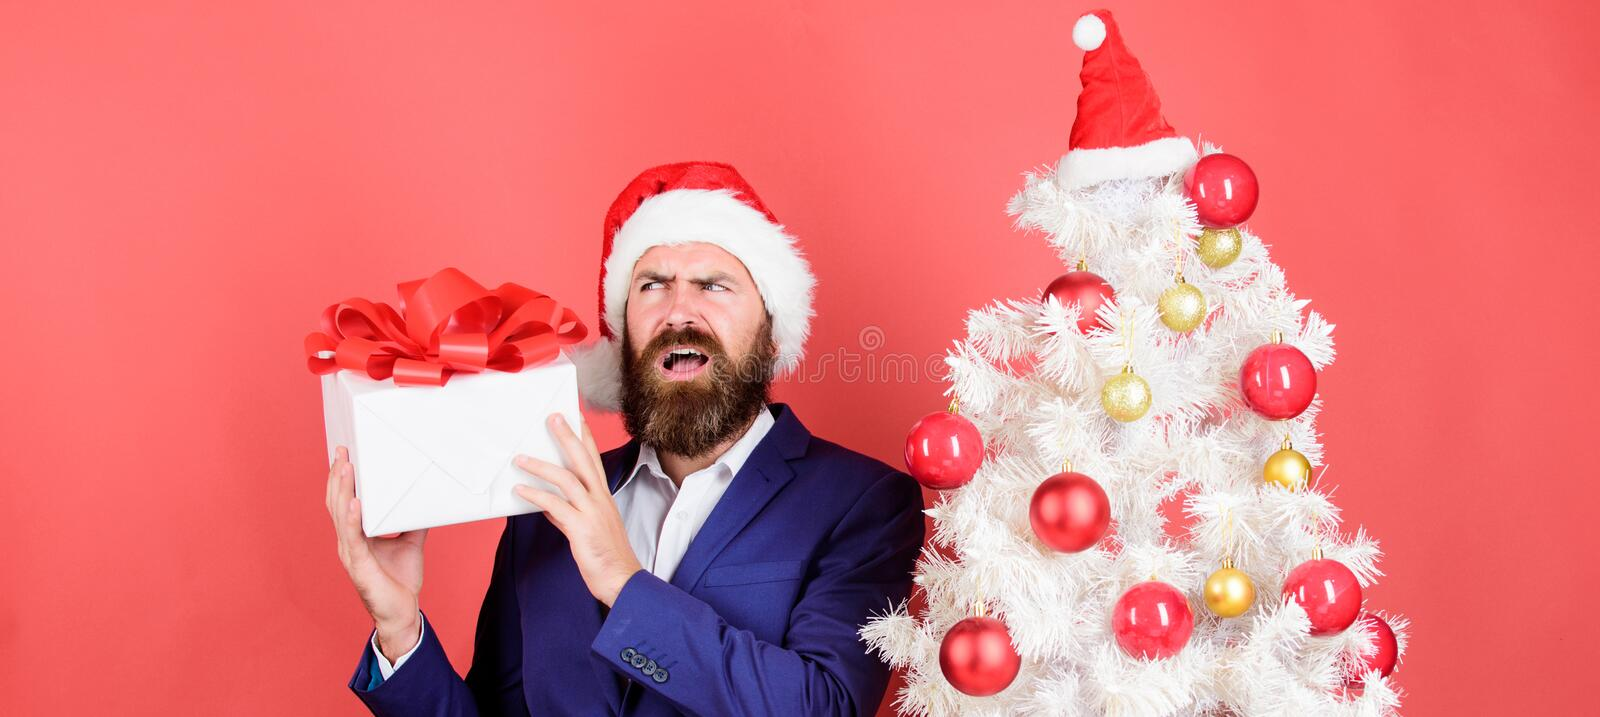 Man bearded hipster formal suit christmas tree hold gift box. Sharing kindness and happiness. Prepare gifts for everyone. Gifts shop. Christmas gifts. Winter royalty free stock photos